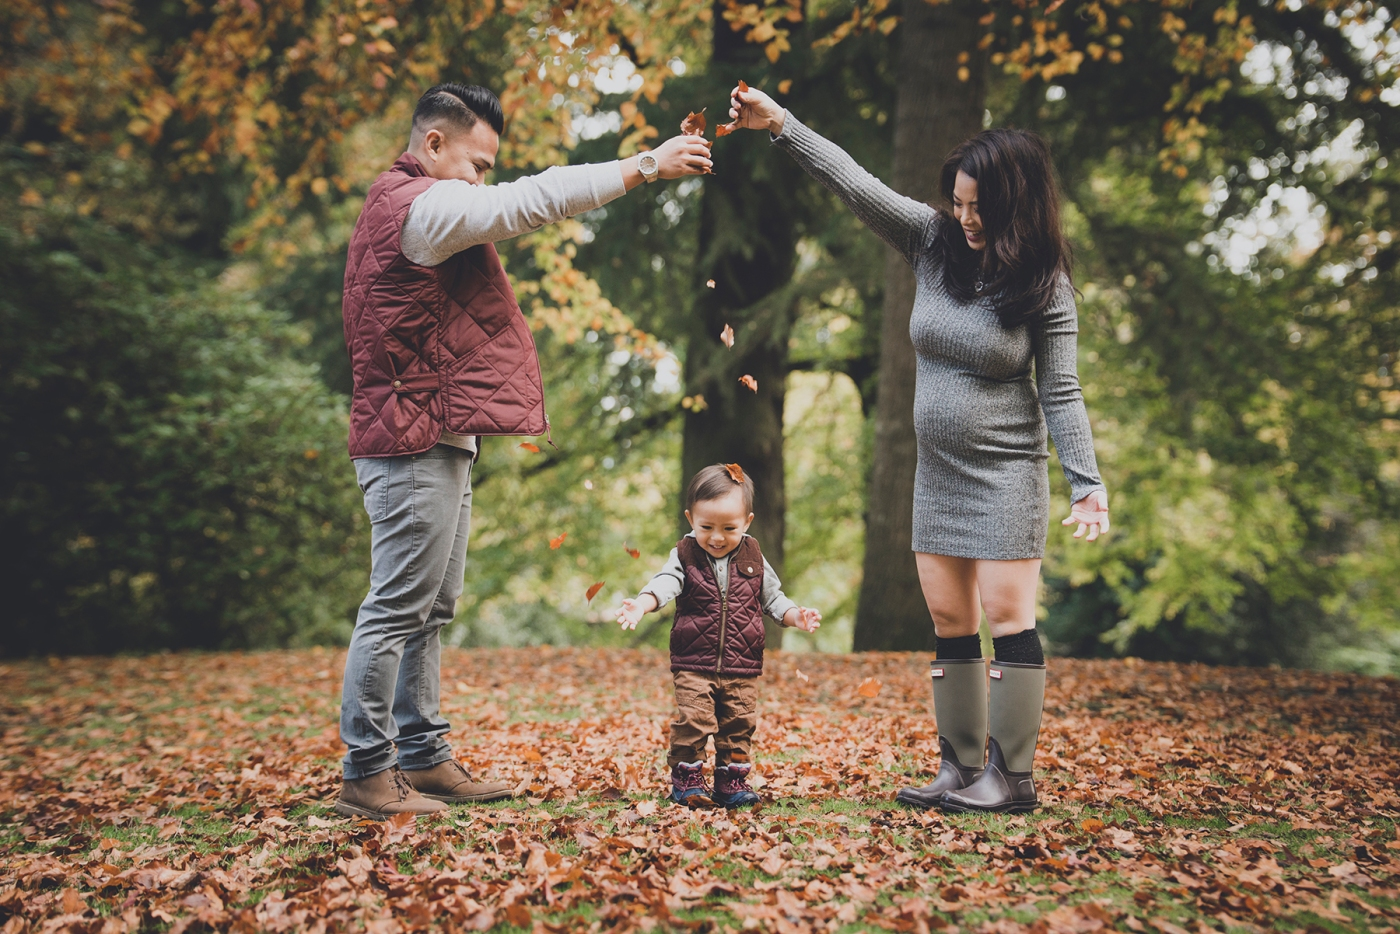 paula_p_maternity_the_royal_squirrel_seattle_family_photographer_2016_fall_dsc_7875